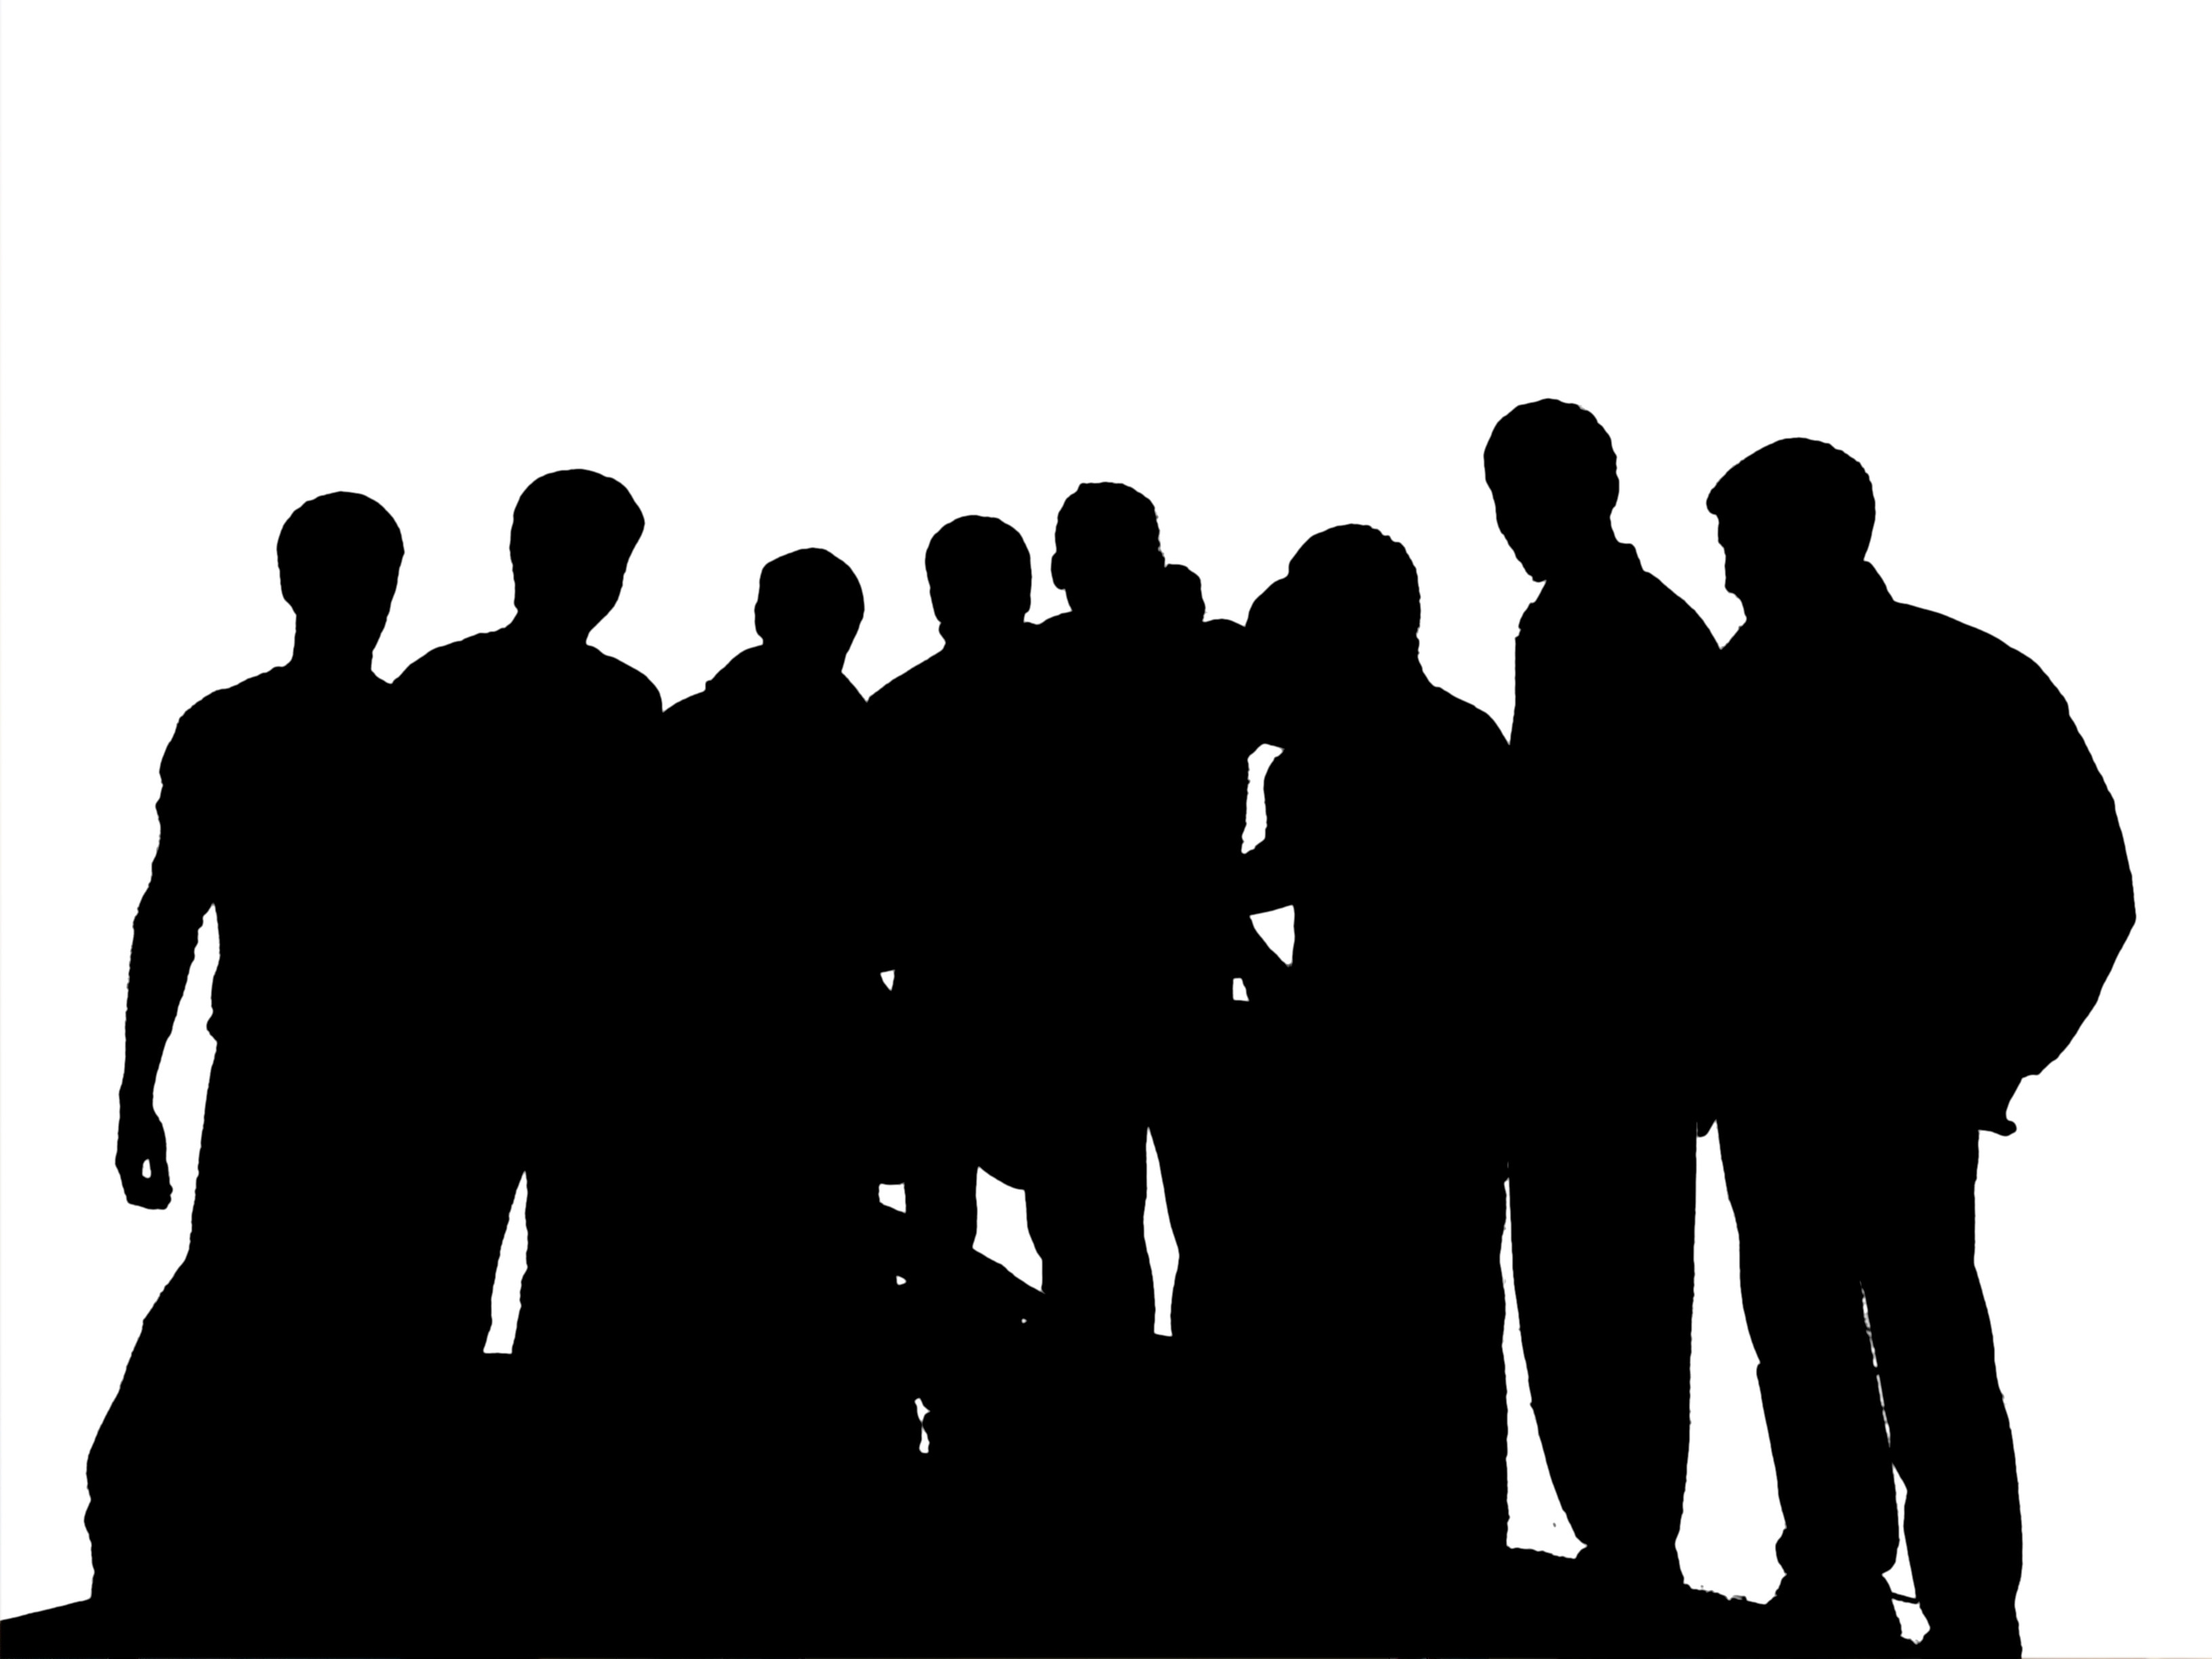 Group of men clipart image royalty free Free Men\'s Group Cliparts, Download Free Clip Art, Free Clip Art on ... image royalty free